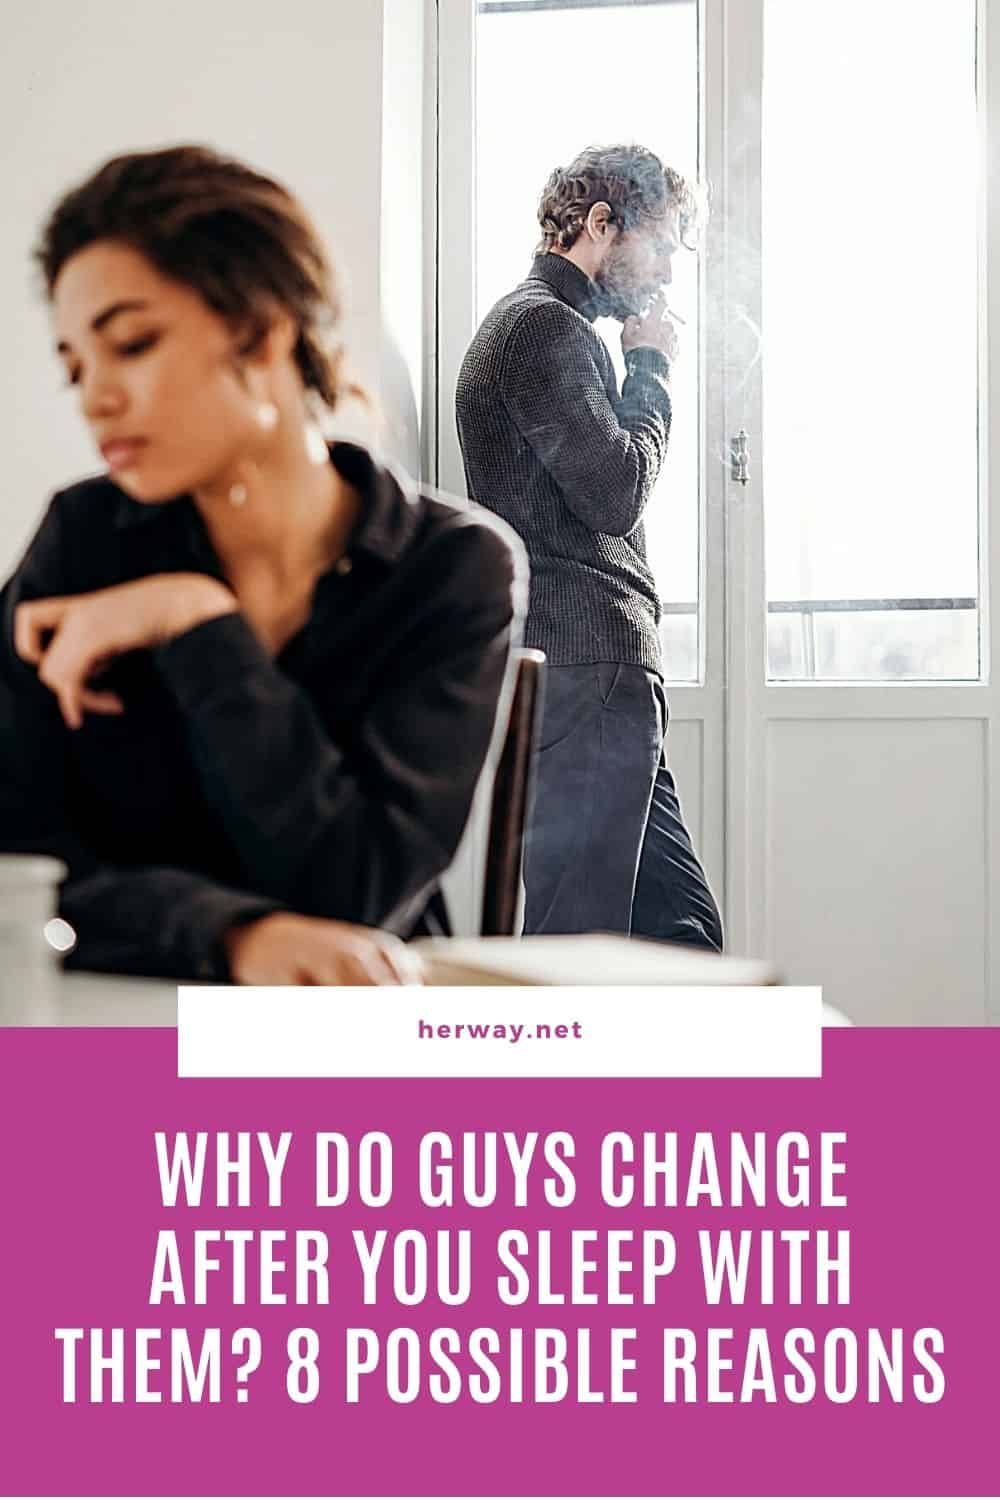 Why Do Guys Change After You Sleep With Them? 8 Possible Reasons